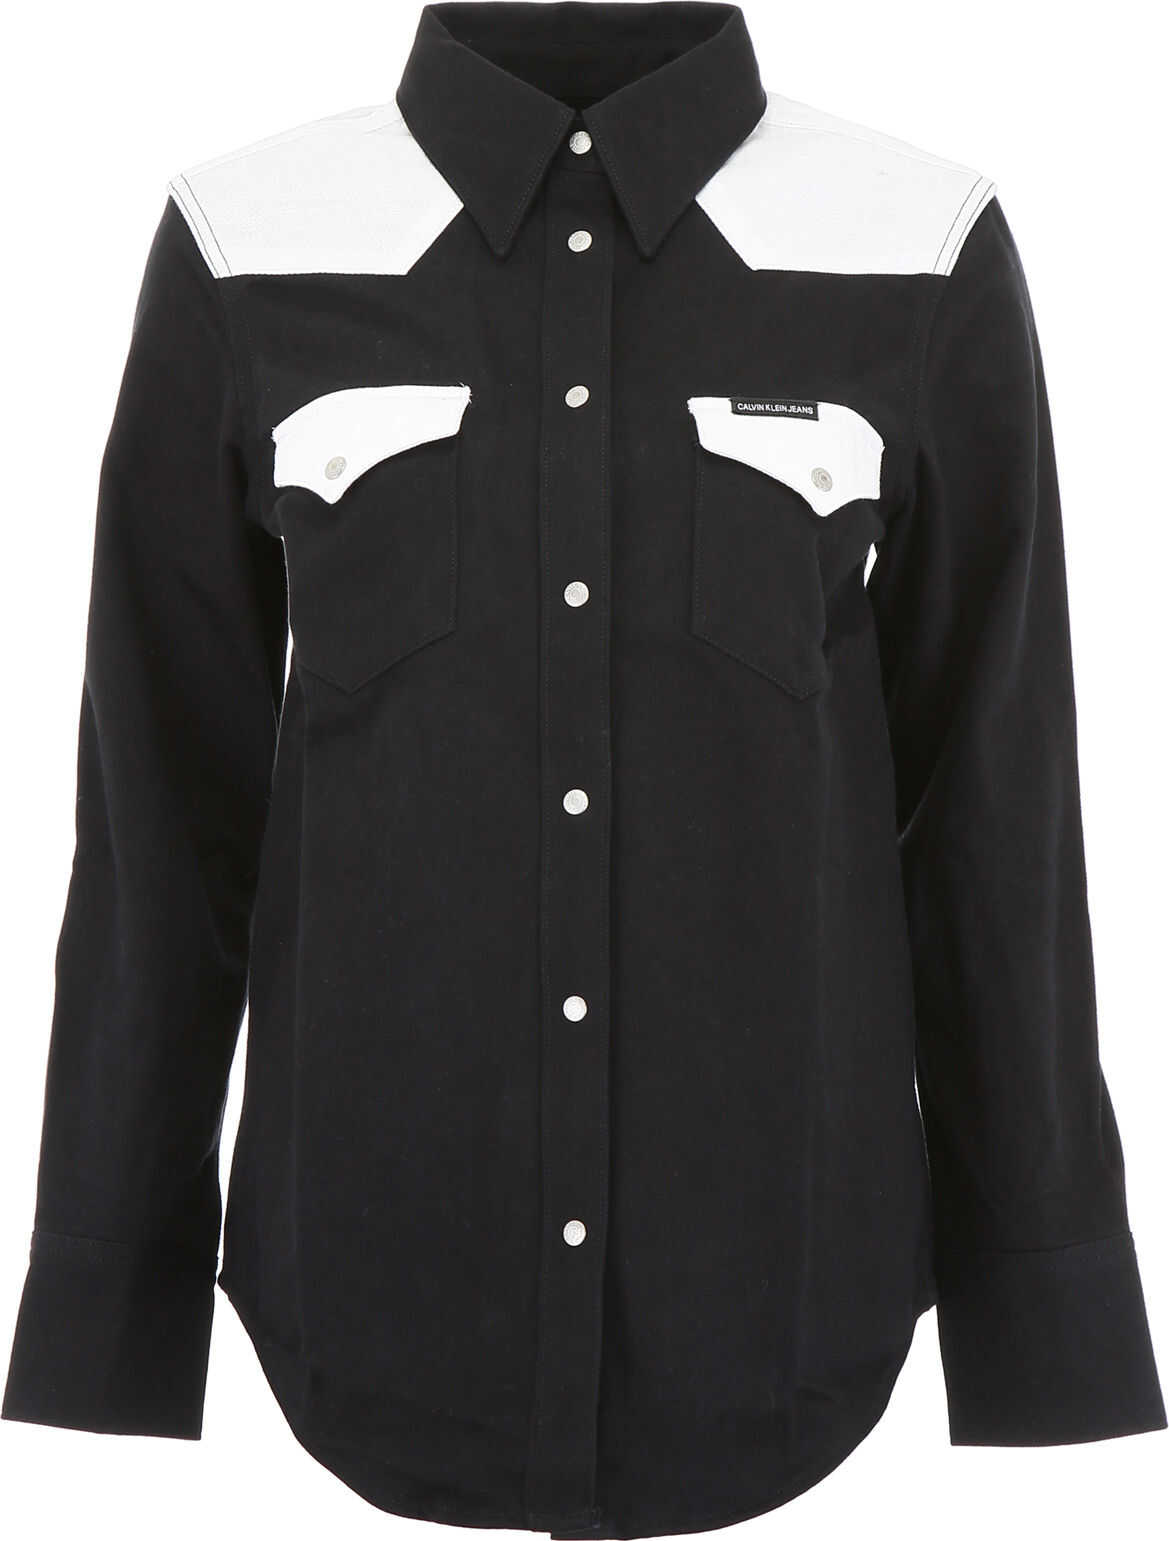 Calvin Klein Jeans Bicolor Denim Shirt BLACK WHITE